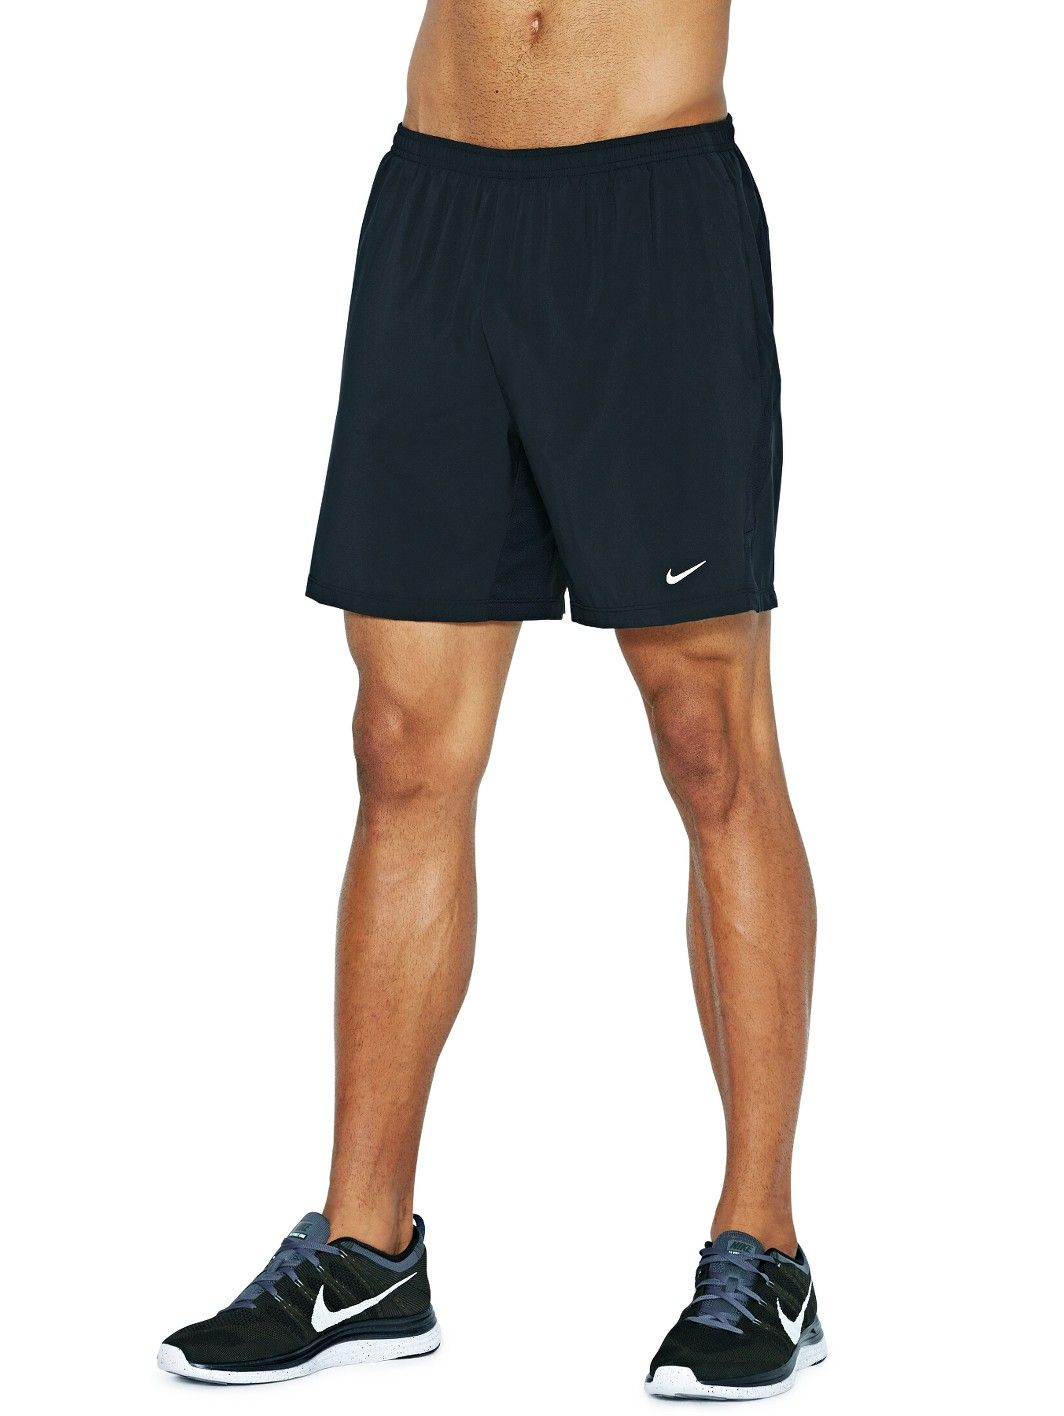 Nike Mens 7 inch Distance Running Shorts  d11628abb